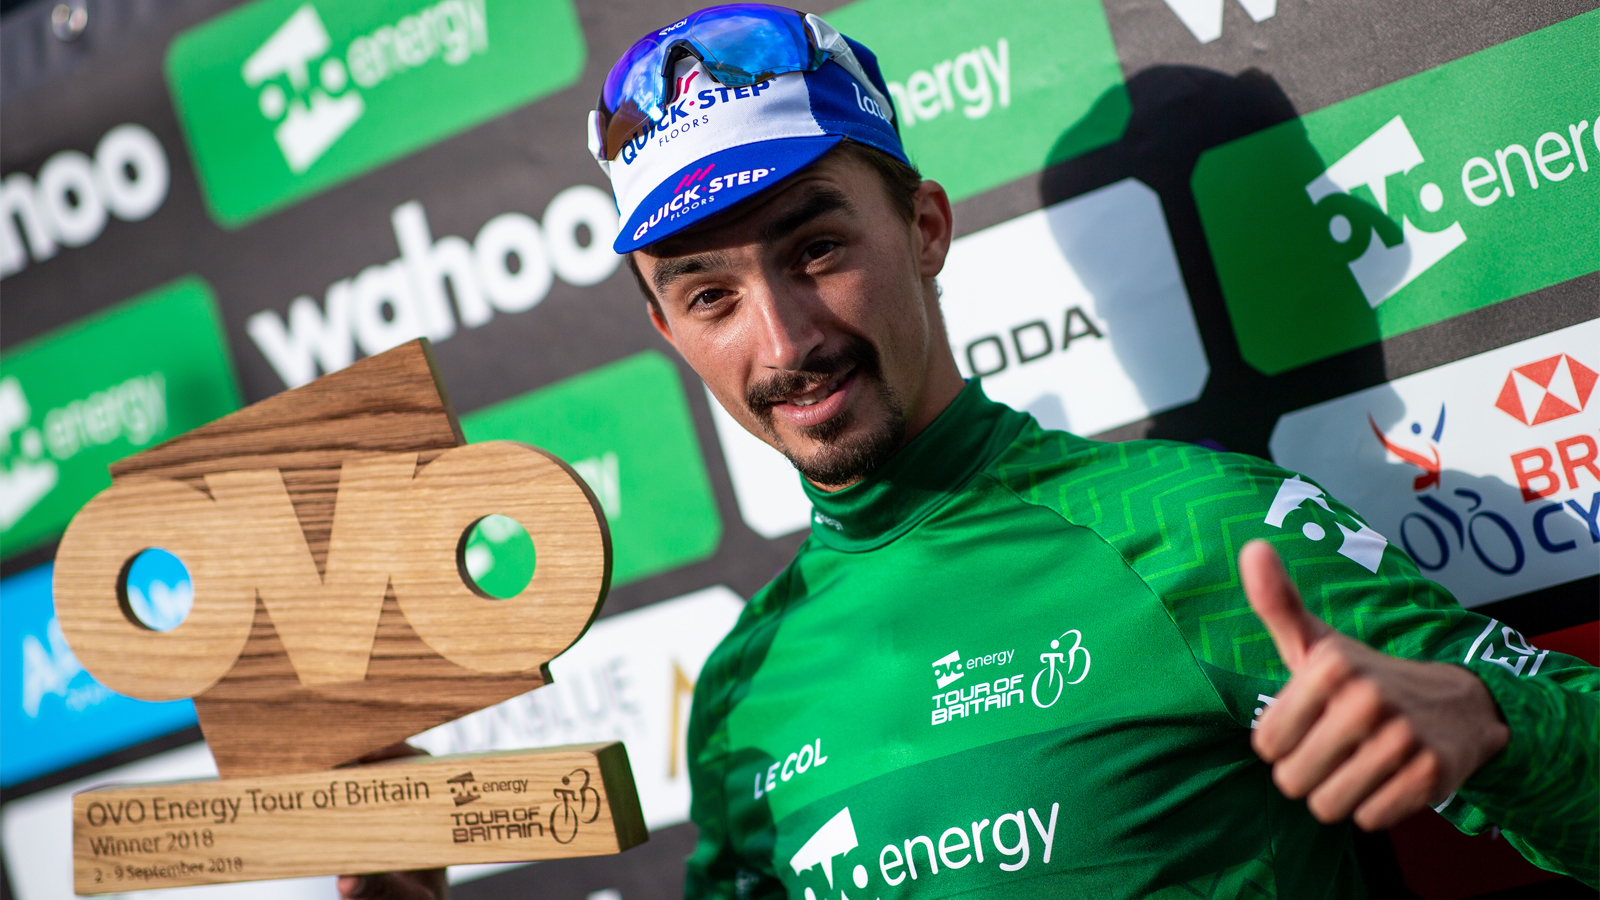 OVO Energy Tour of Britain prize money